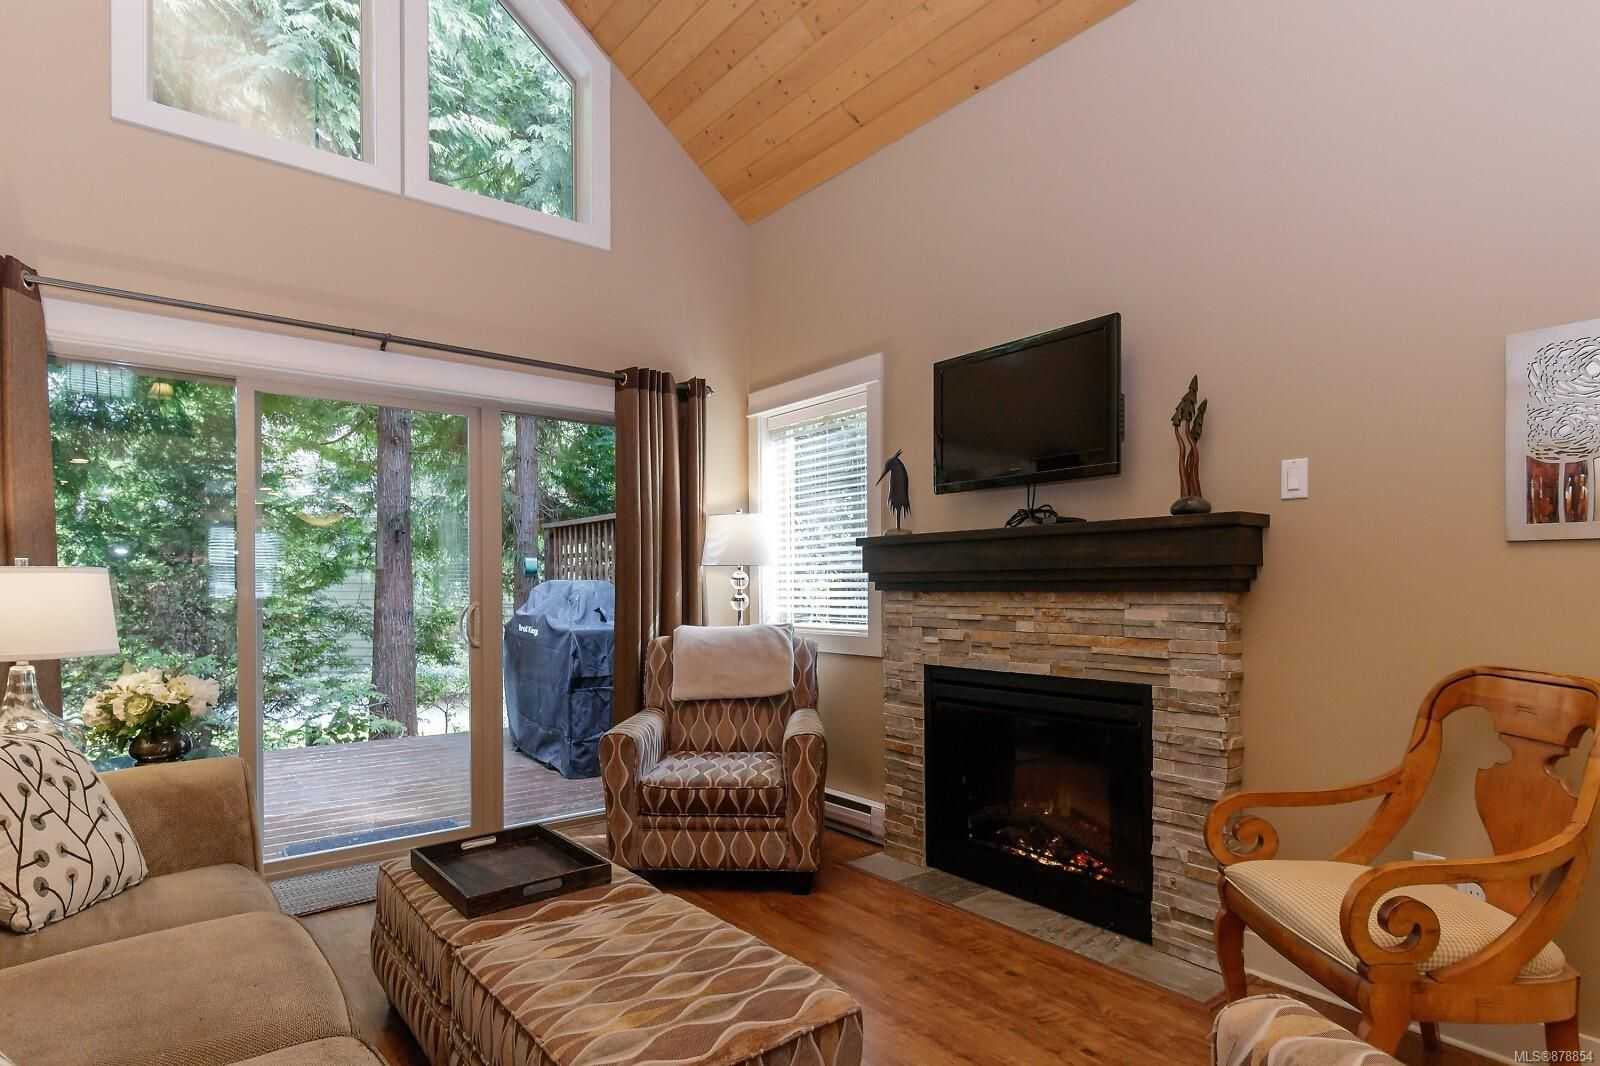 Photo 8: Photos: 223 1130 Resort Dr in : PQ Parksville Row/Townhouse for sale (Parksville/Qualicum)  : MLS®# 878854